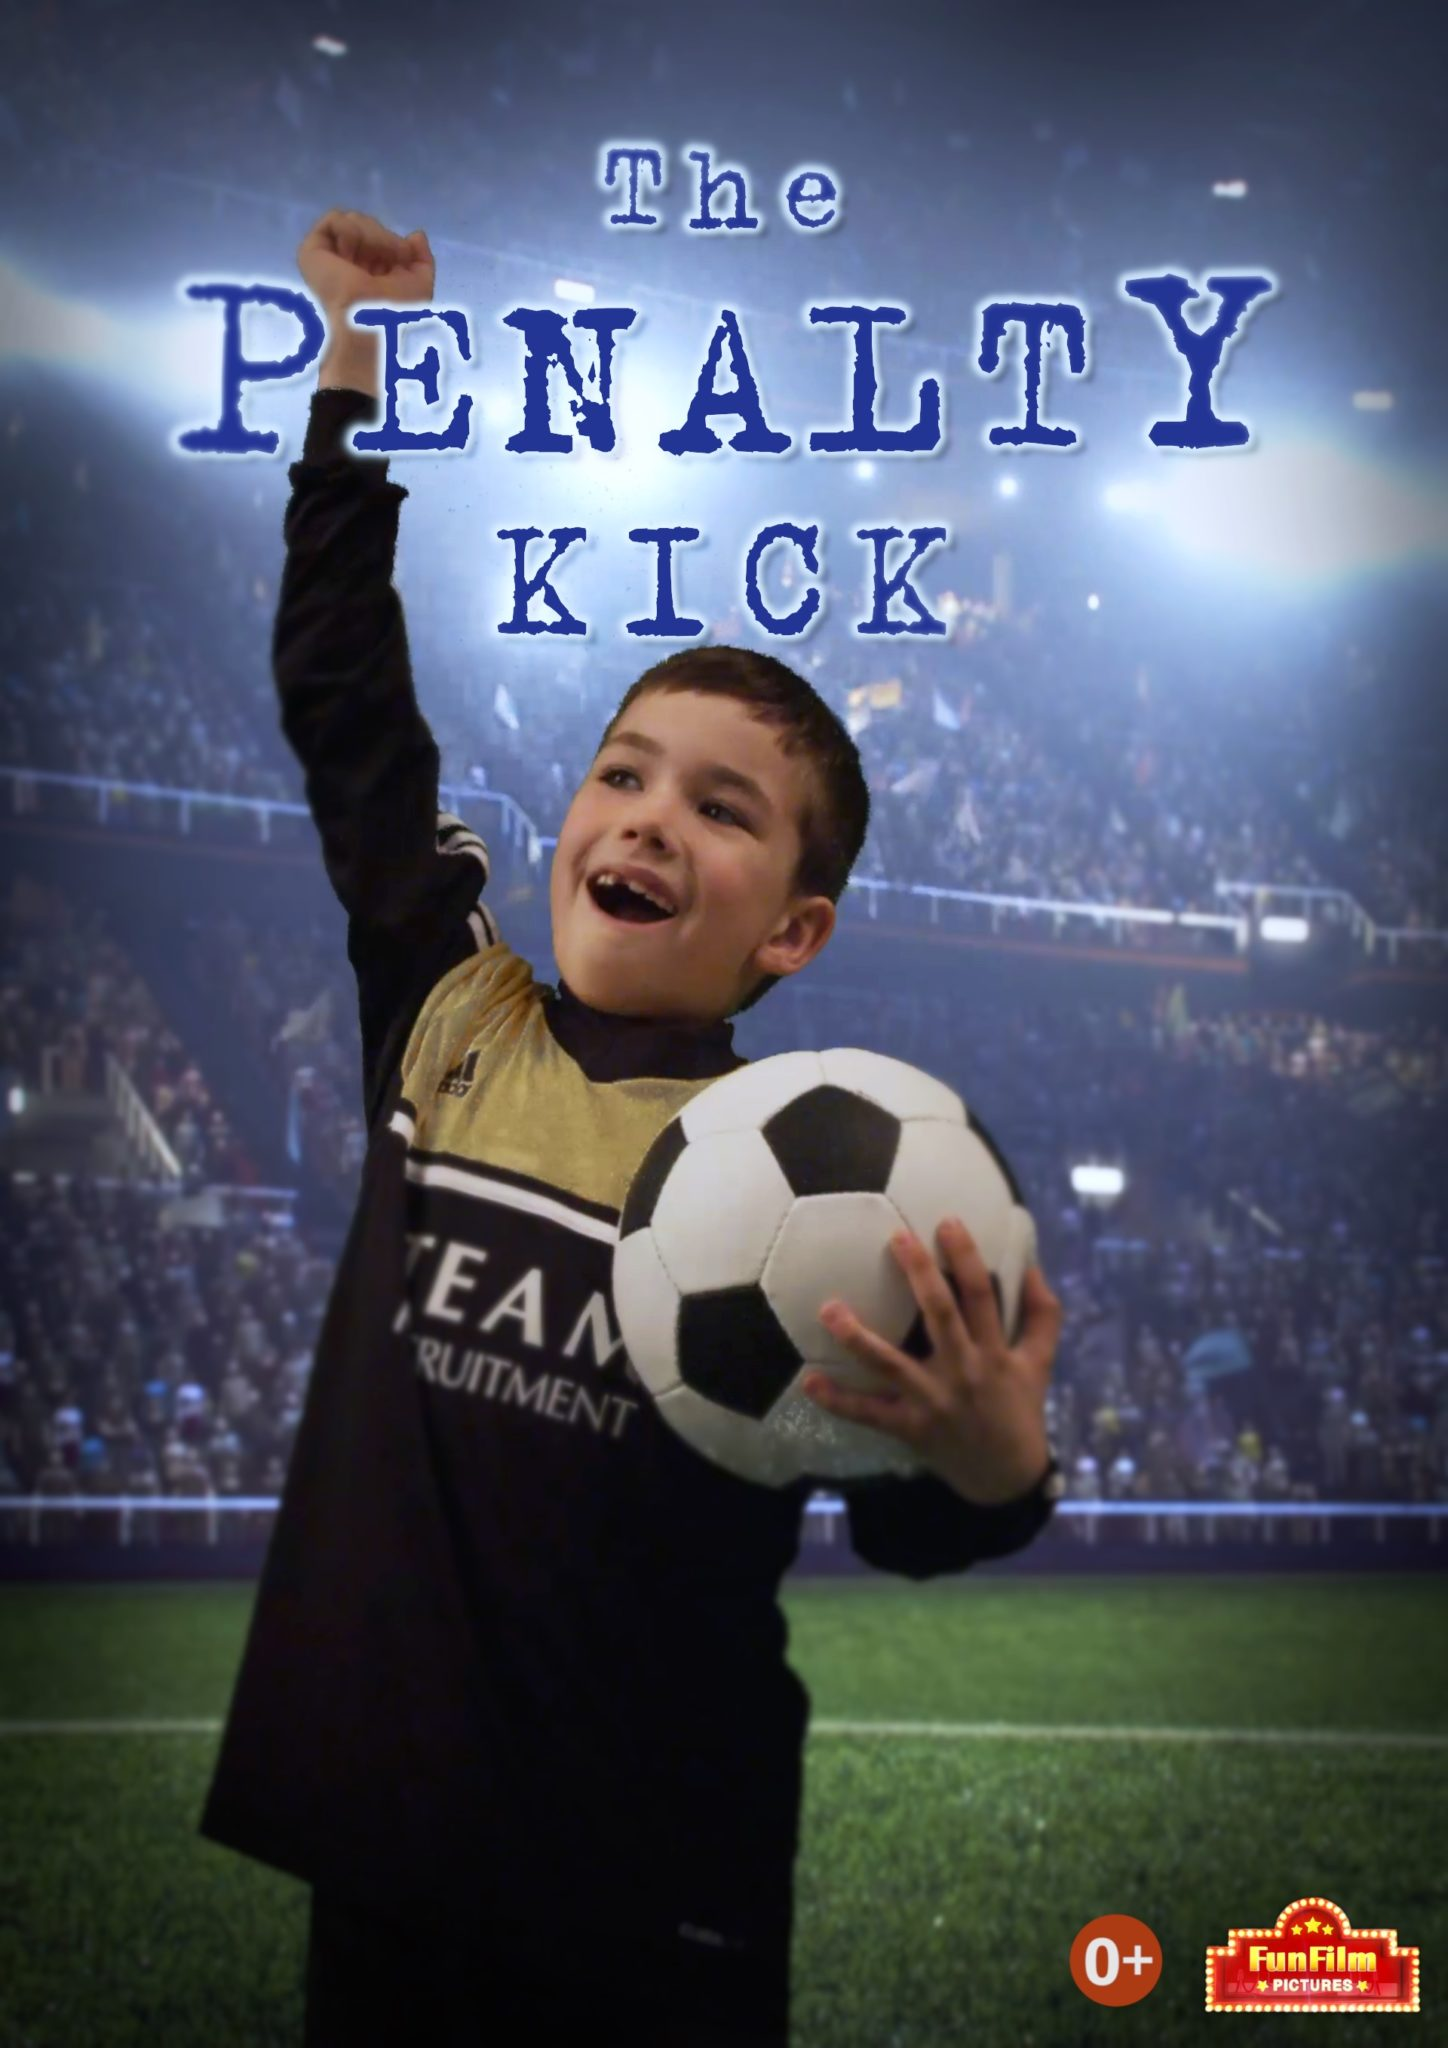 football poster platon EN 13 07 18 - The Penalty Kick